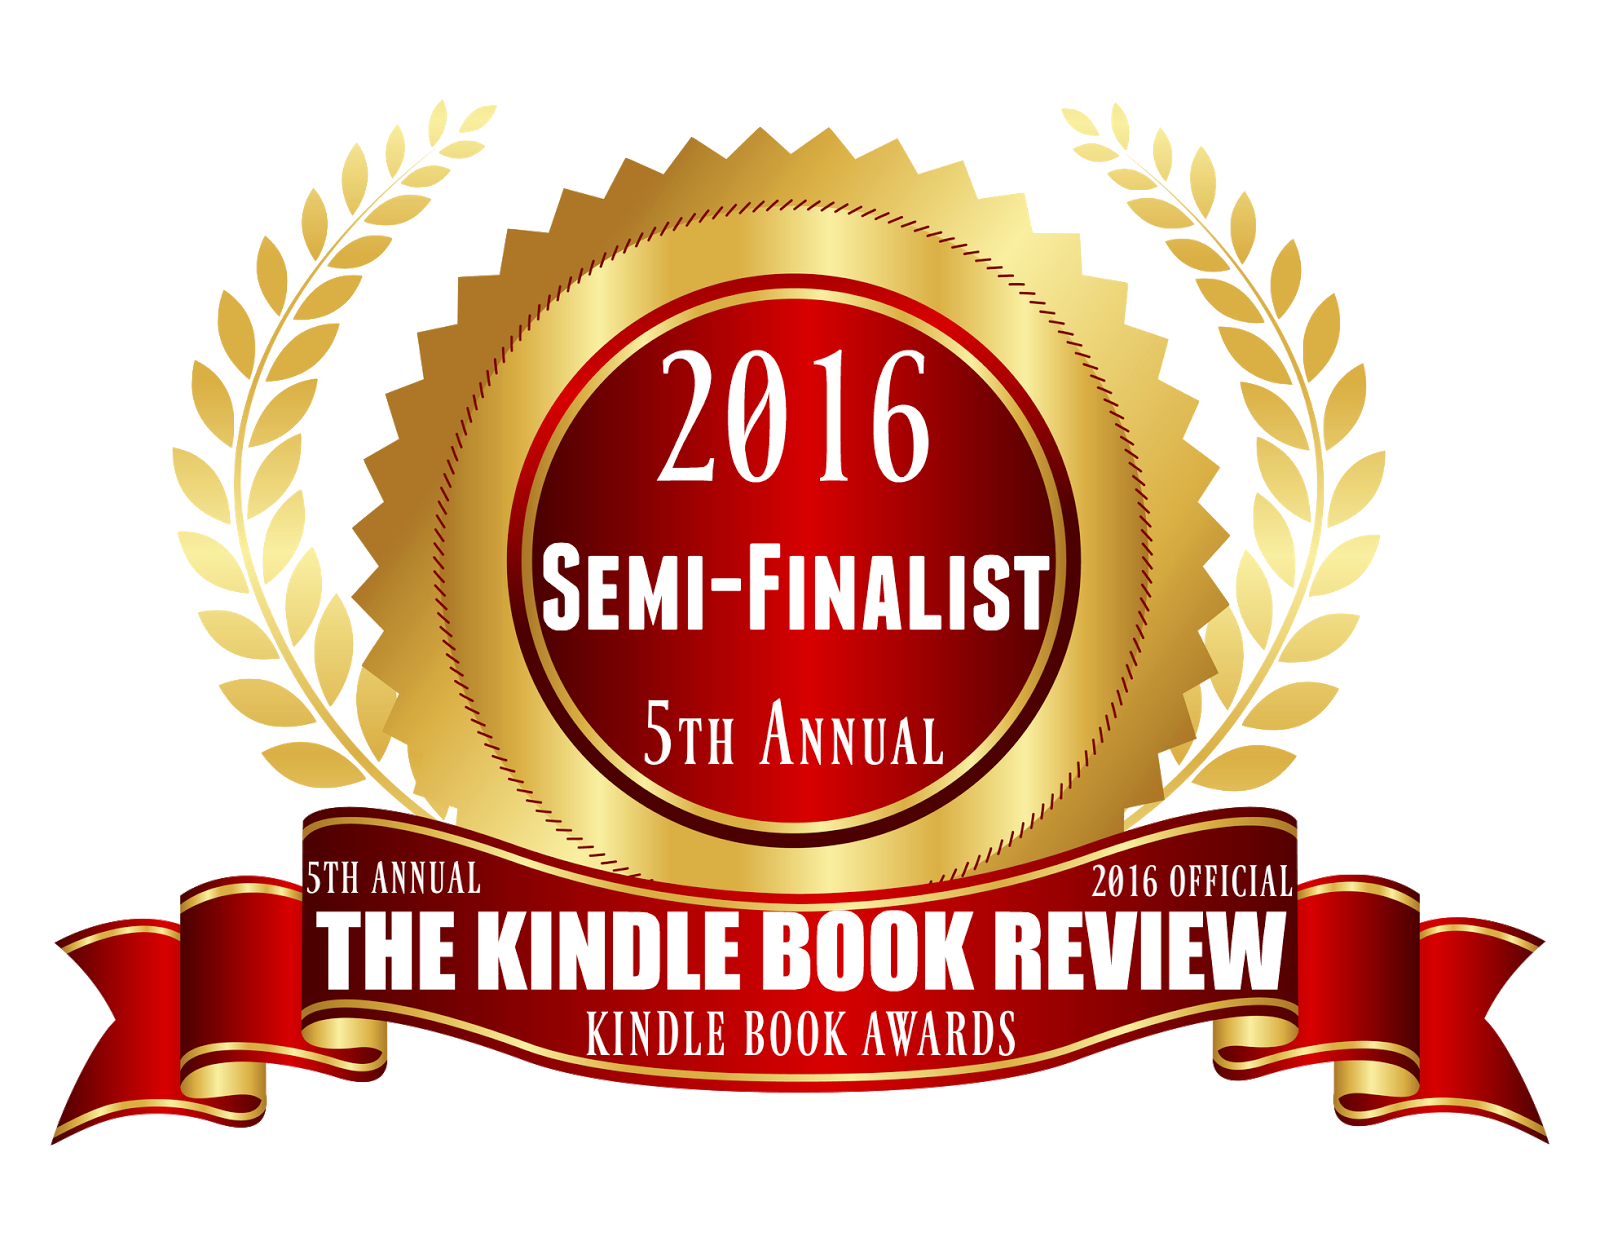 2016 Best Kindle Book Awards Semi-Finalist